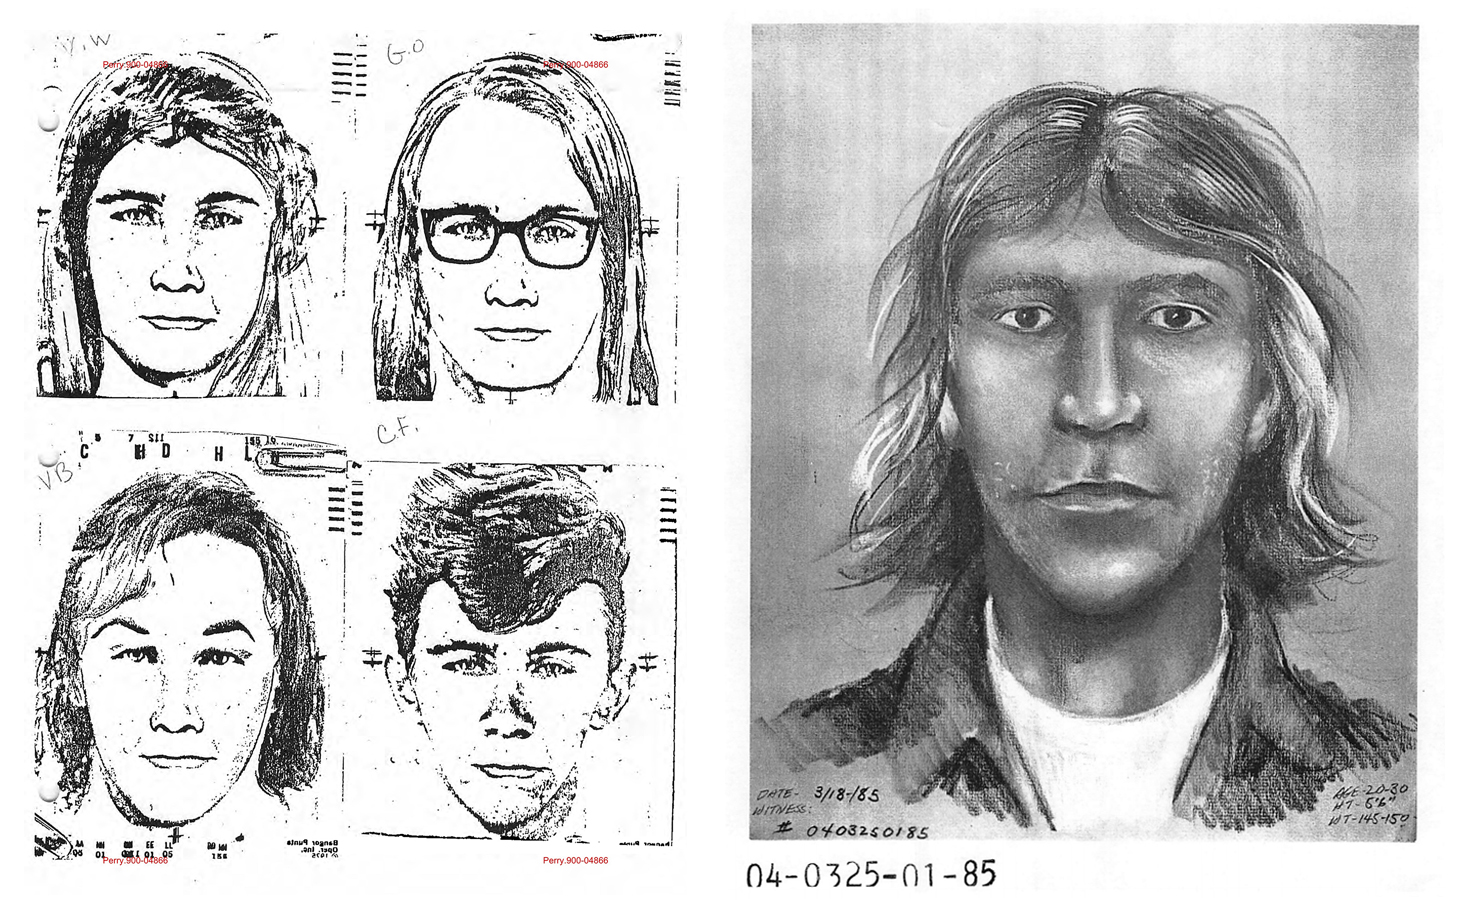 Four church witnesses who said they saw the killer each helped an artist make a sketch of the man. The four sketches became a composite that was featured on TV and in newspapers and hung on the walls of gas stations.